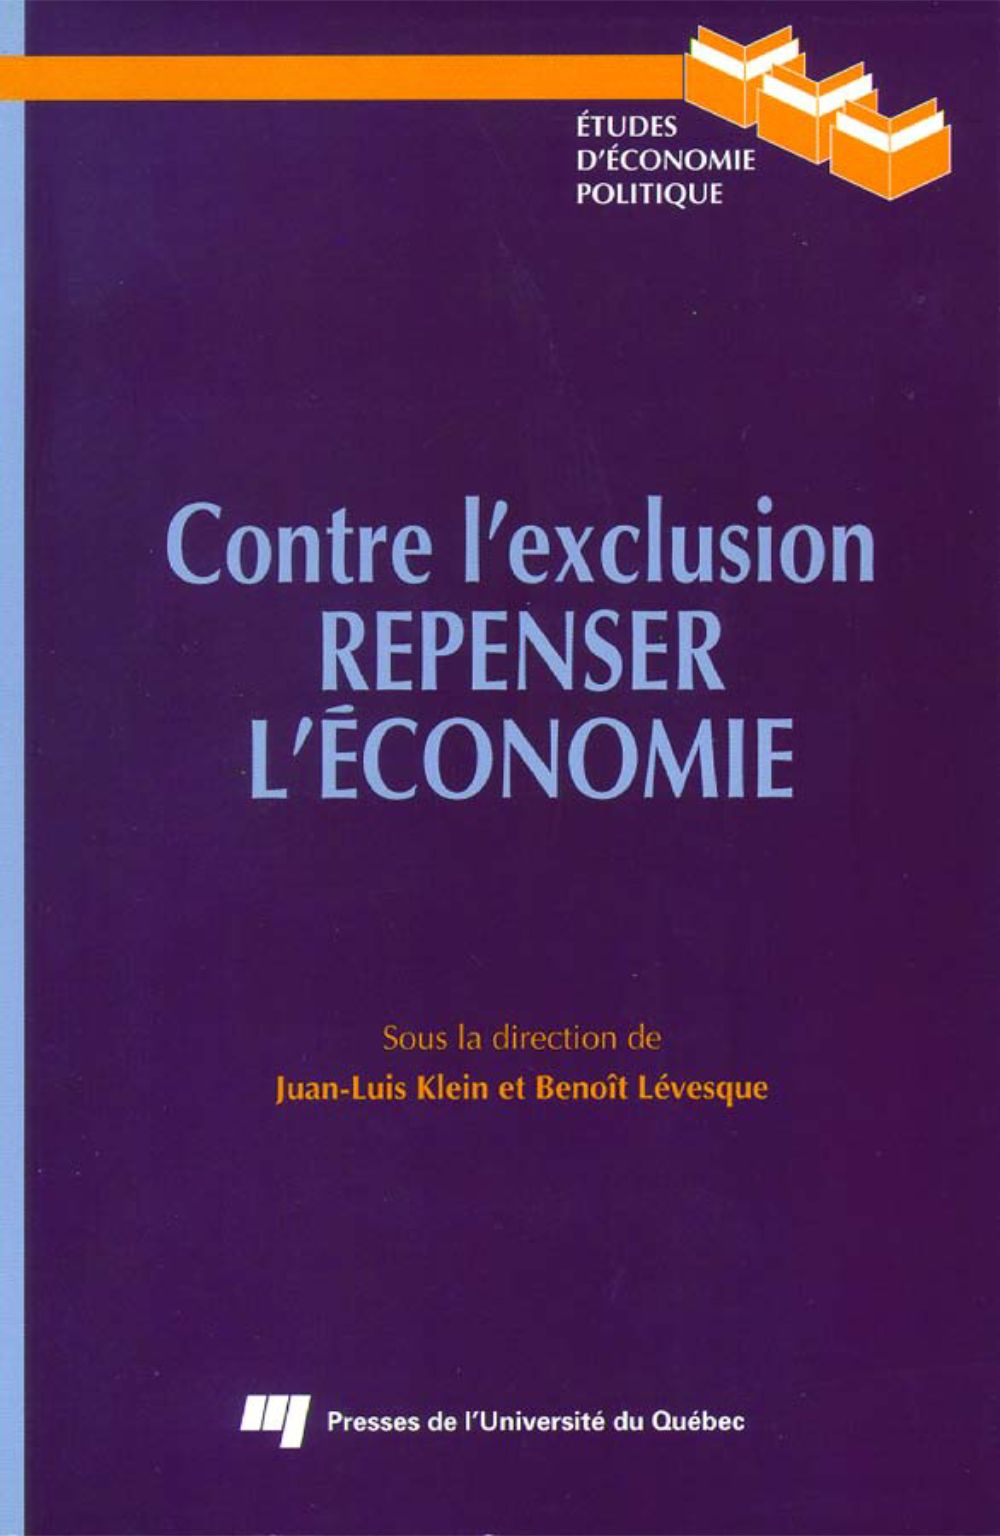 Contre l'exclusion. Repenser l'écomie.